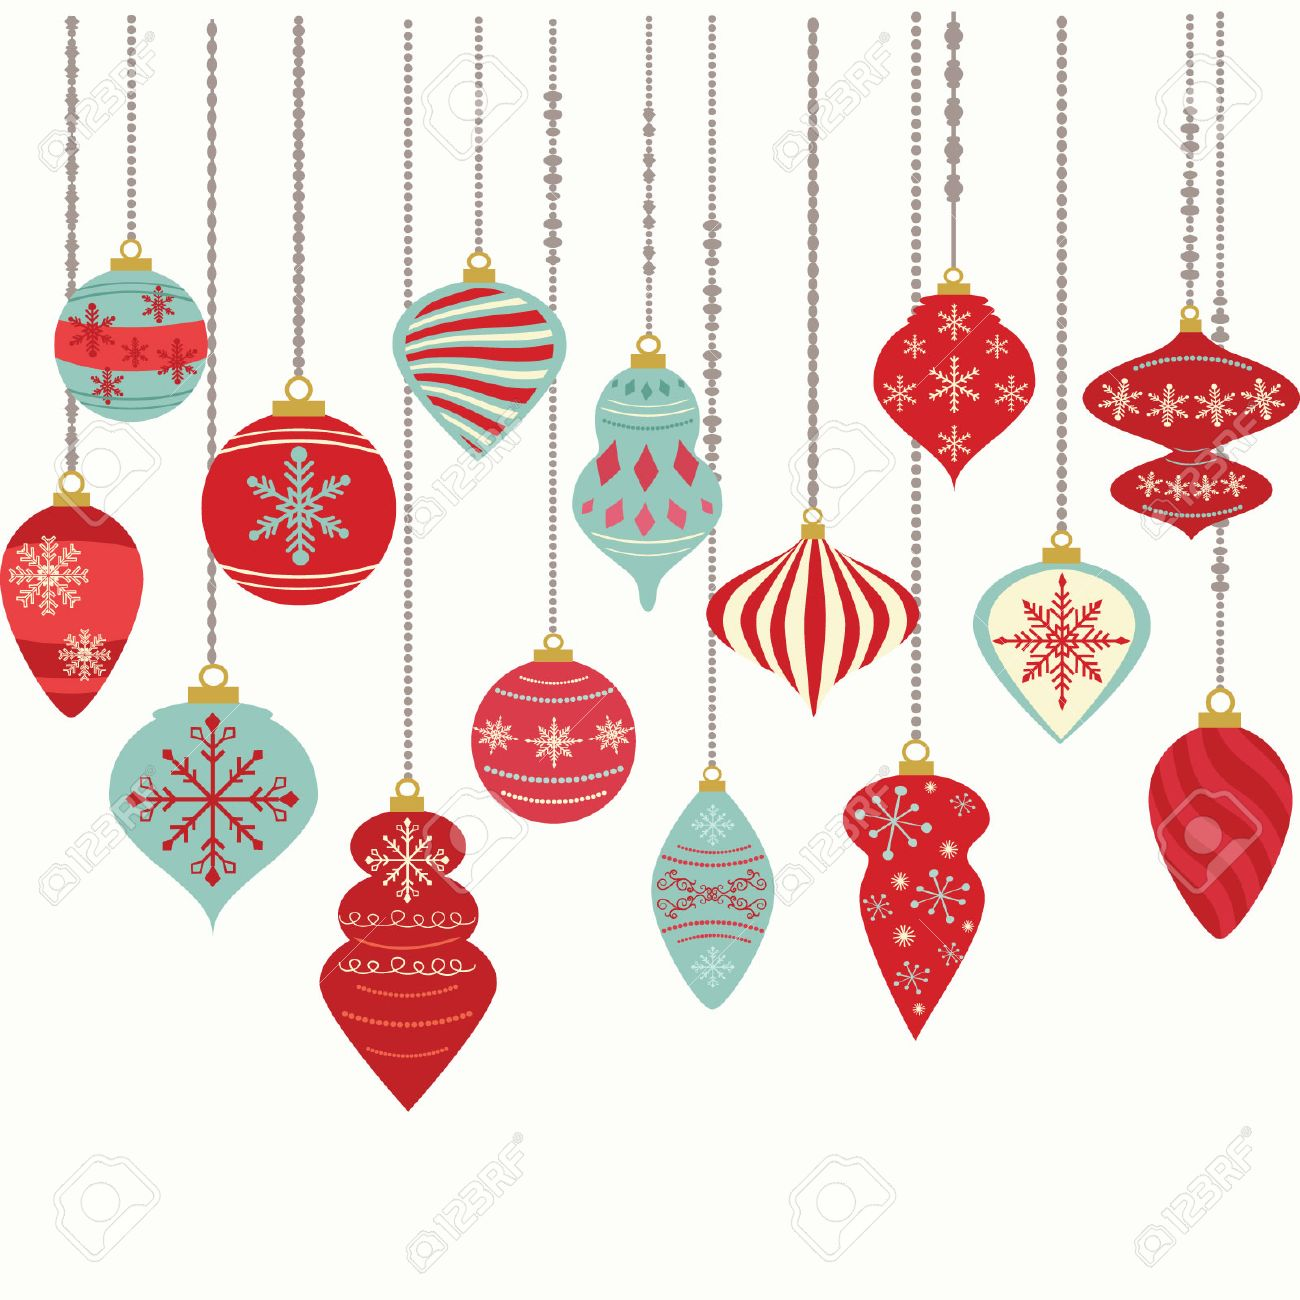 christmas ornamentschristmas balls decorationschristmas hanging decoration set stock vector 47654466